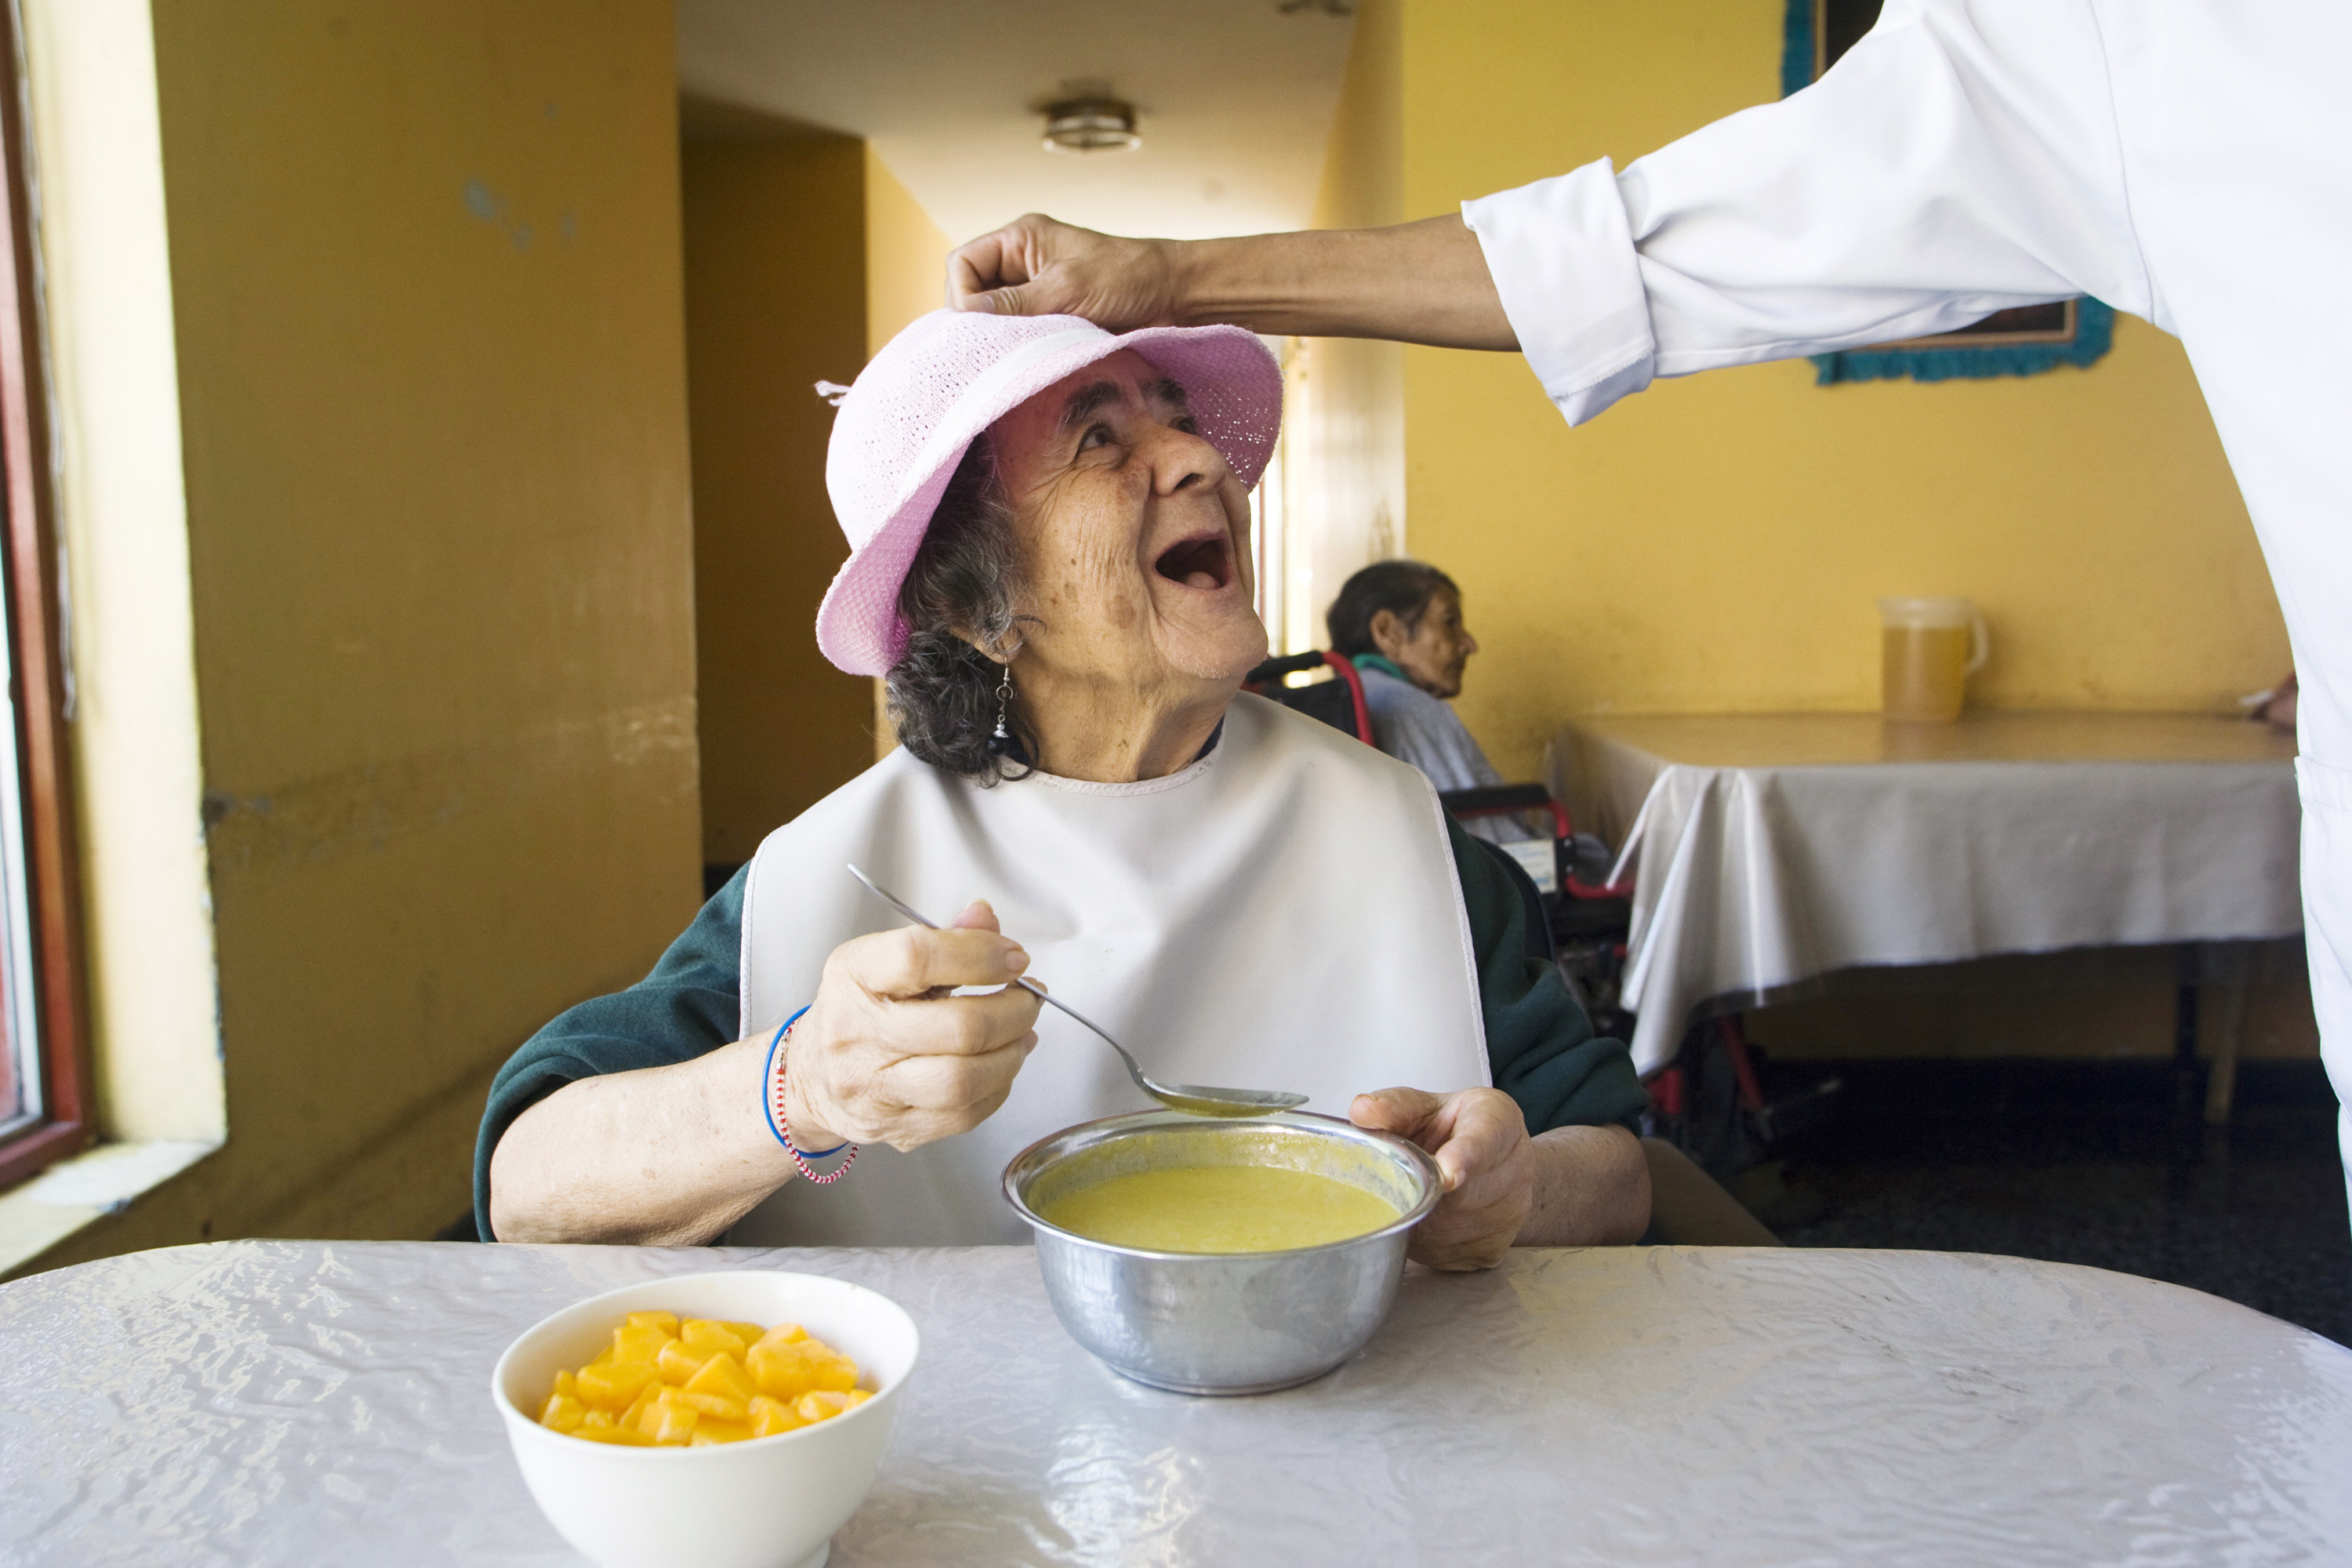 An elderly woman smiles while joking with a nurse during her lunch at the Canevaro old people's home in Lima March 25, 2010. This public institution is one the biggest in its kind in Latin America, hosting almost 400 elderly people, including dependent patients and those with senile dementia. 90 percent of its population are in abandon condition and more than the half used to live in extreme poverty, according to Canevaro's Director, Felipe Aguirre. Picture taken March 25, 2010. REUTERS/Enrique Castro-Mendivil (PERU - Tags: HEALTH SOCIETY IMAGES OF THE DAY) - GM1E63R03HL01